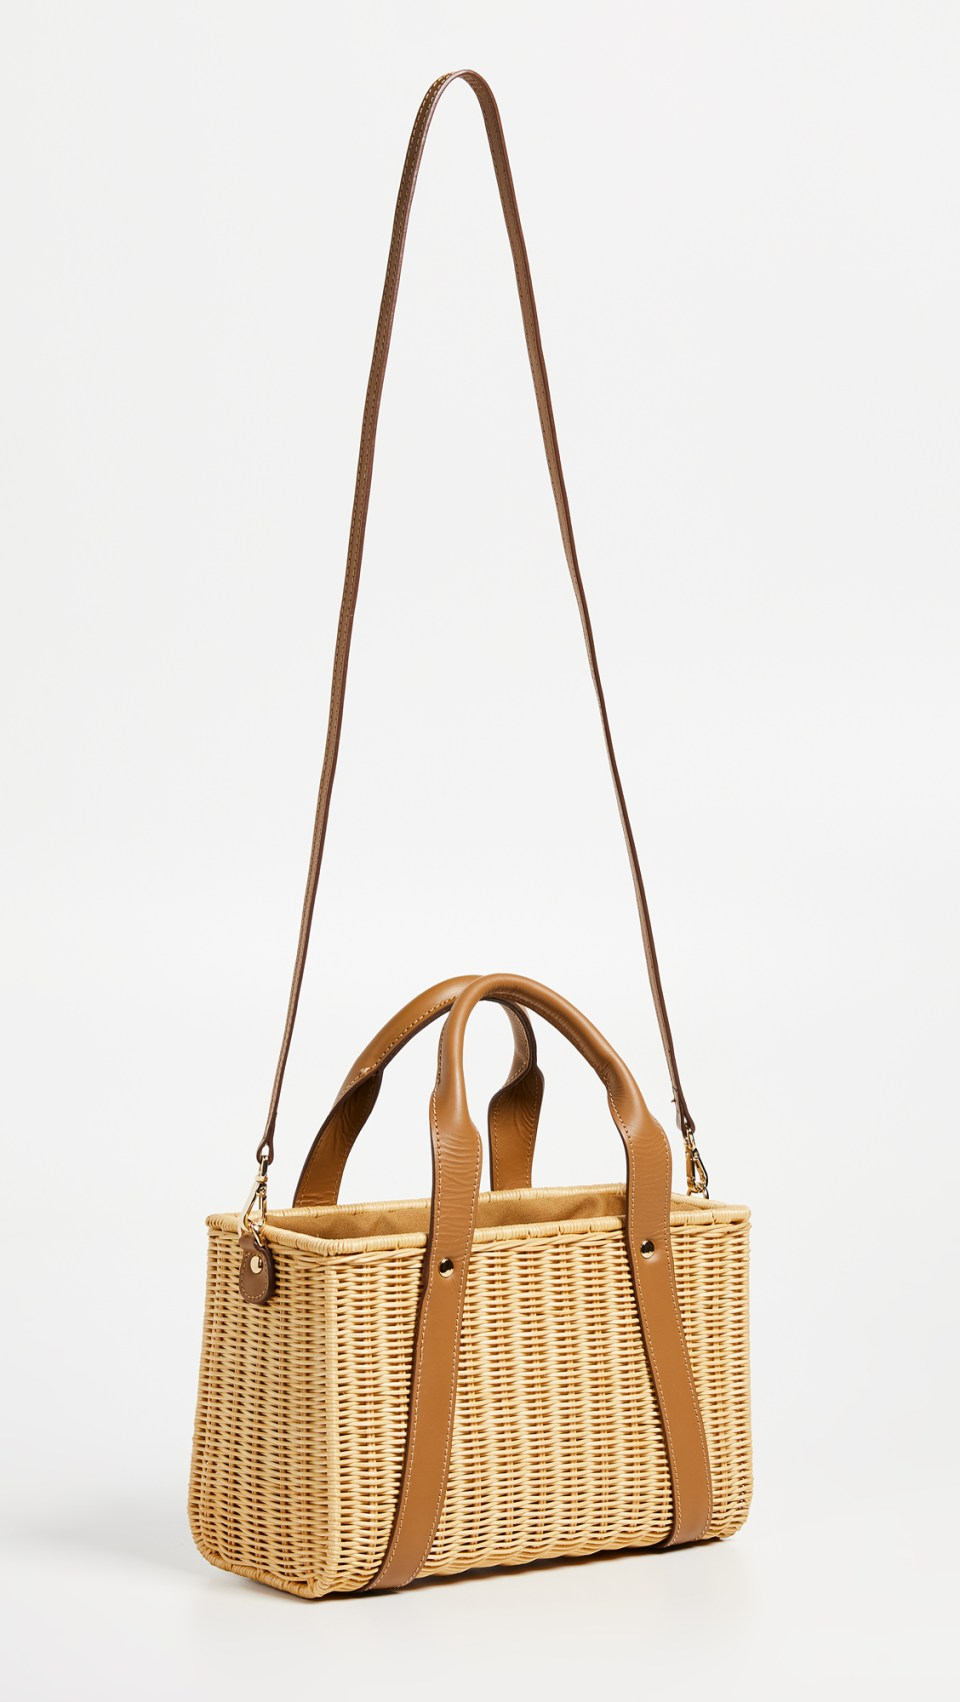 SHOPBOP Kayu Daisy Wicker Tote Bag